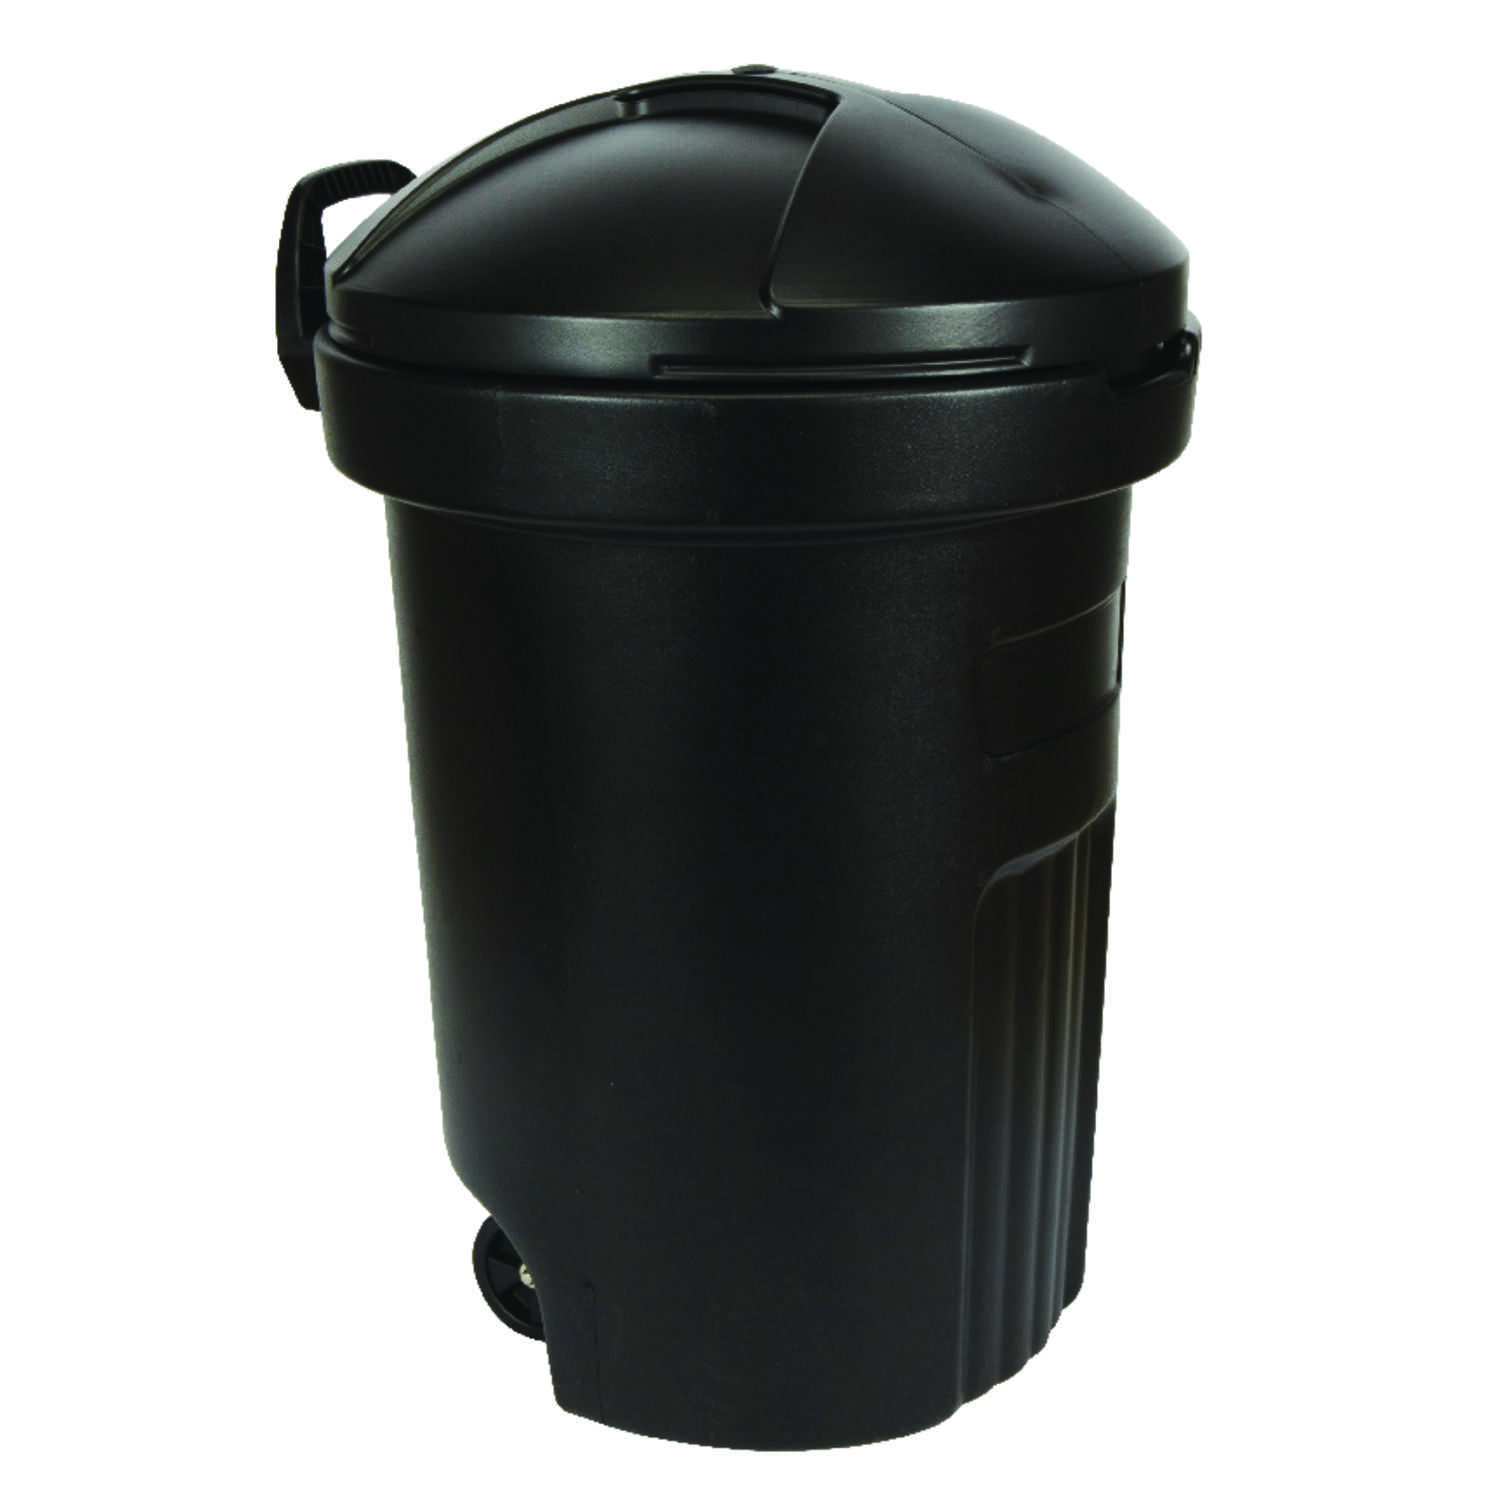 semco 32 gal plastic garbage can ace hardware